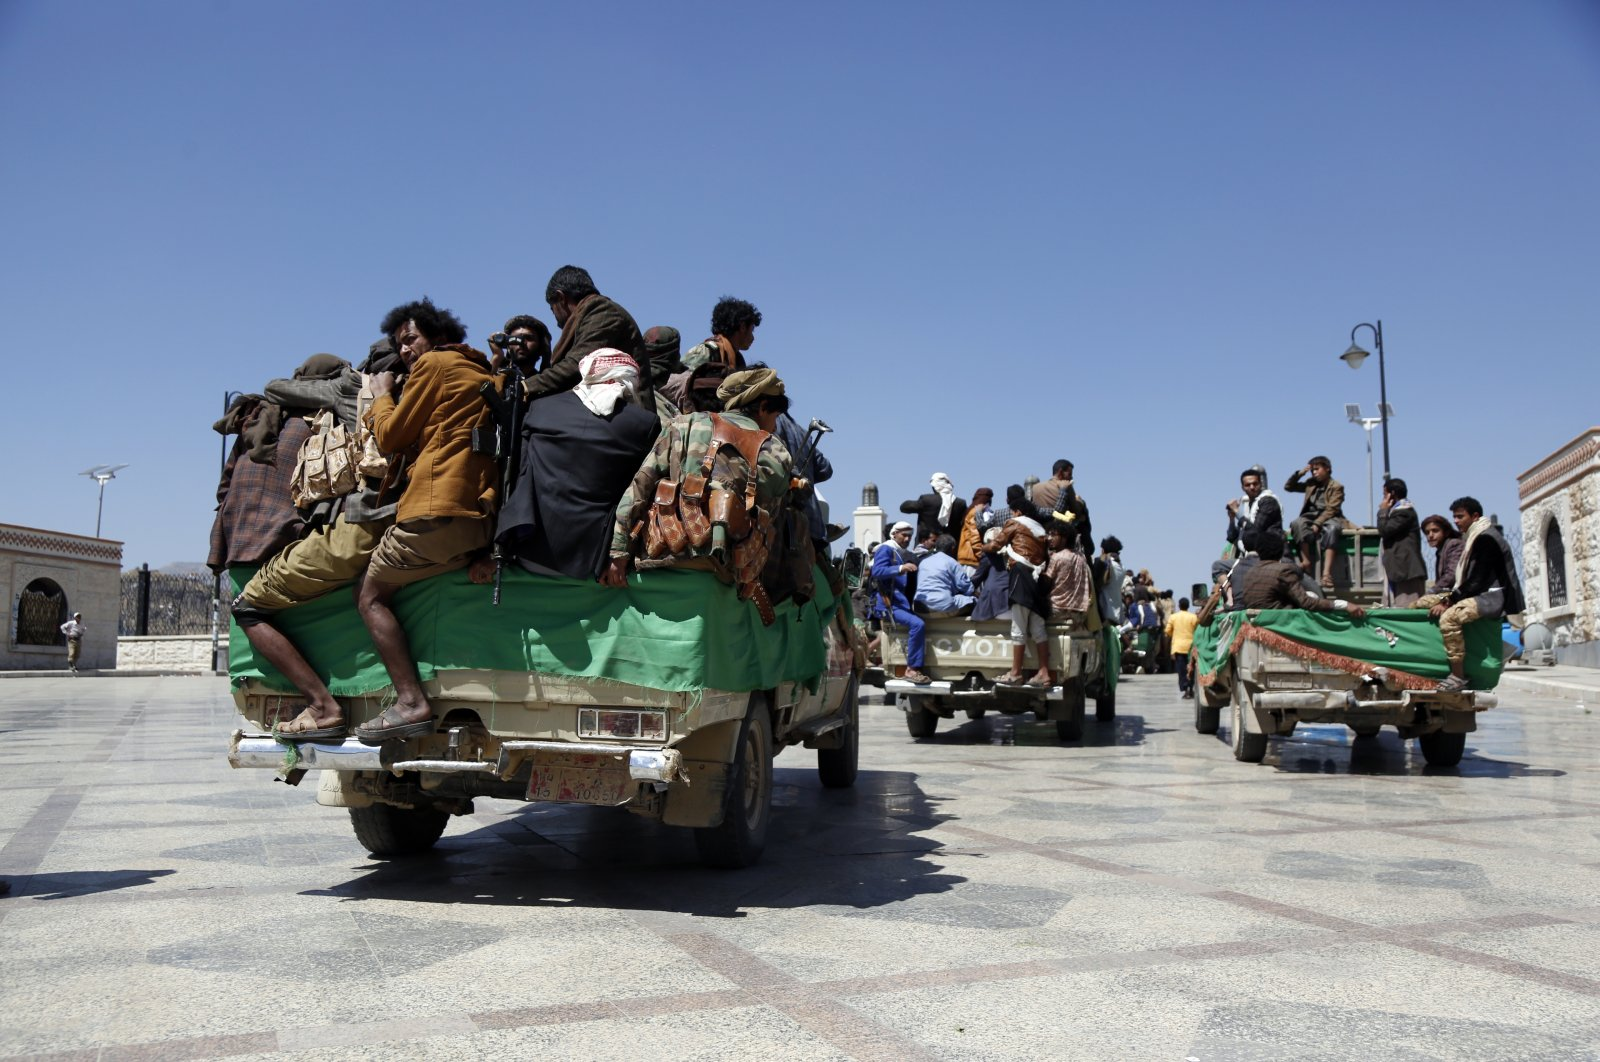 Houthi followers ride vehicles after having participated in a funeral for their fighters killed in a clash between the Houthis and government forces over the Marib region, Sanaa, Yemen, March 9, 2021. (Photo by Getty Images)